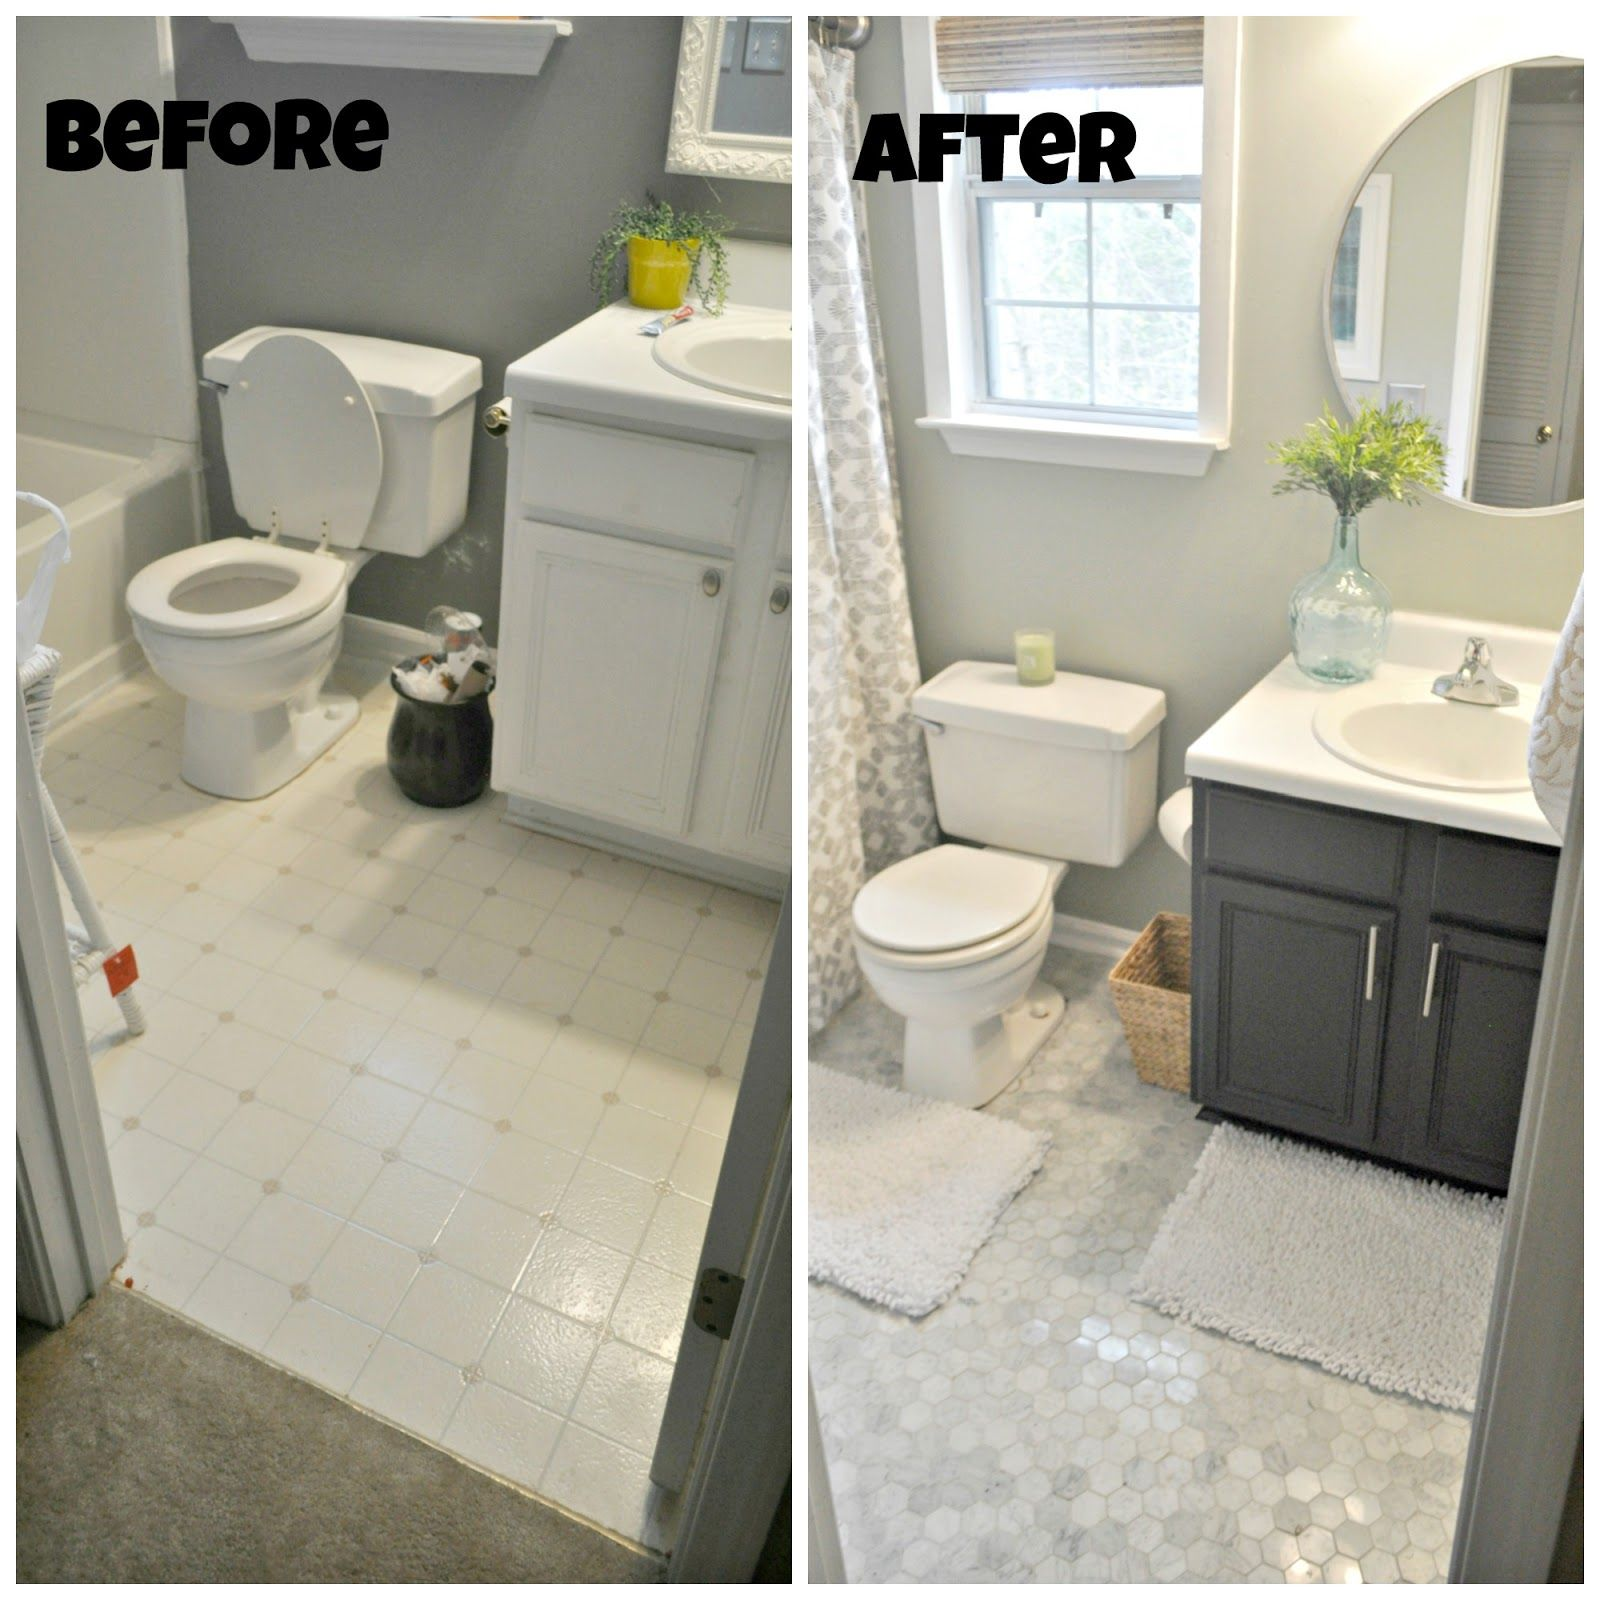 Guest Bathroom Makeover Reveal With Images Budget Bathroom Remodel Simple Bathroom Small Bathroom Remodel